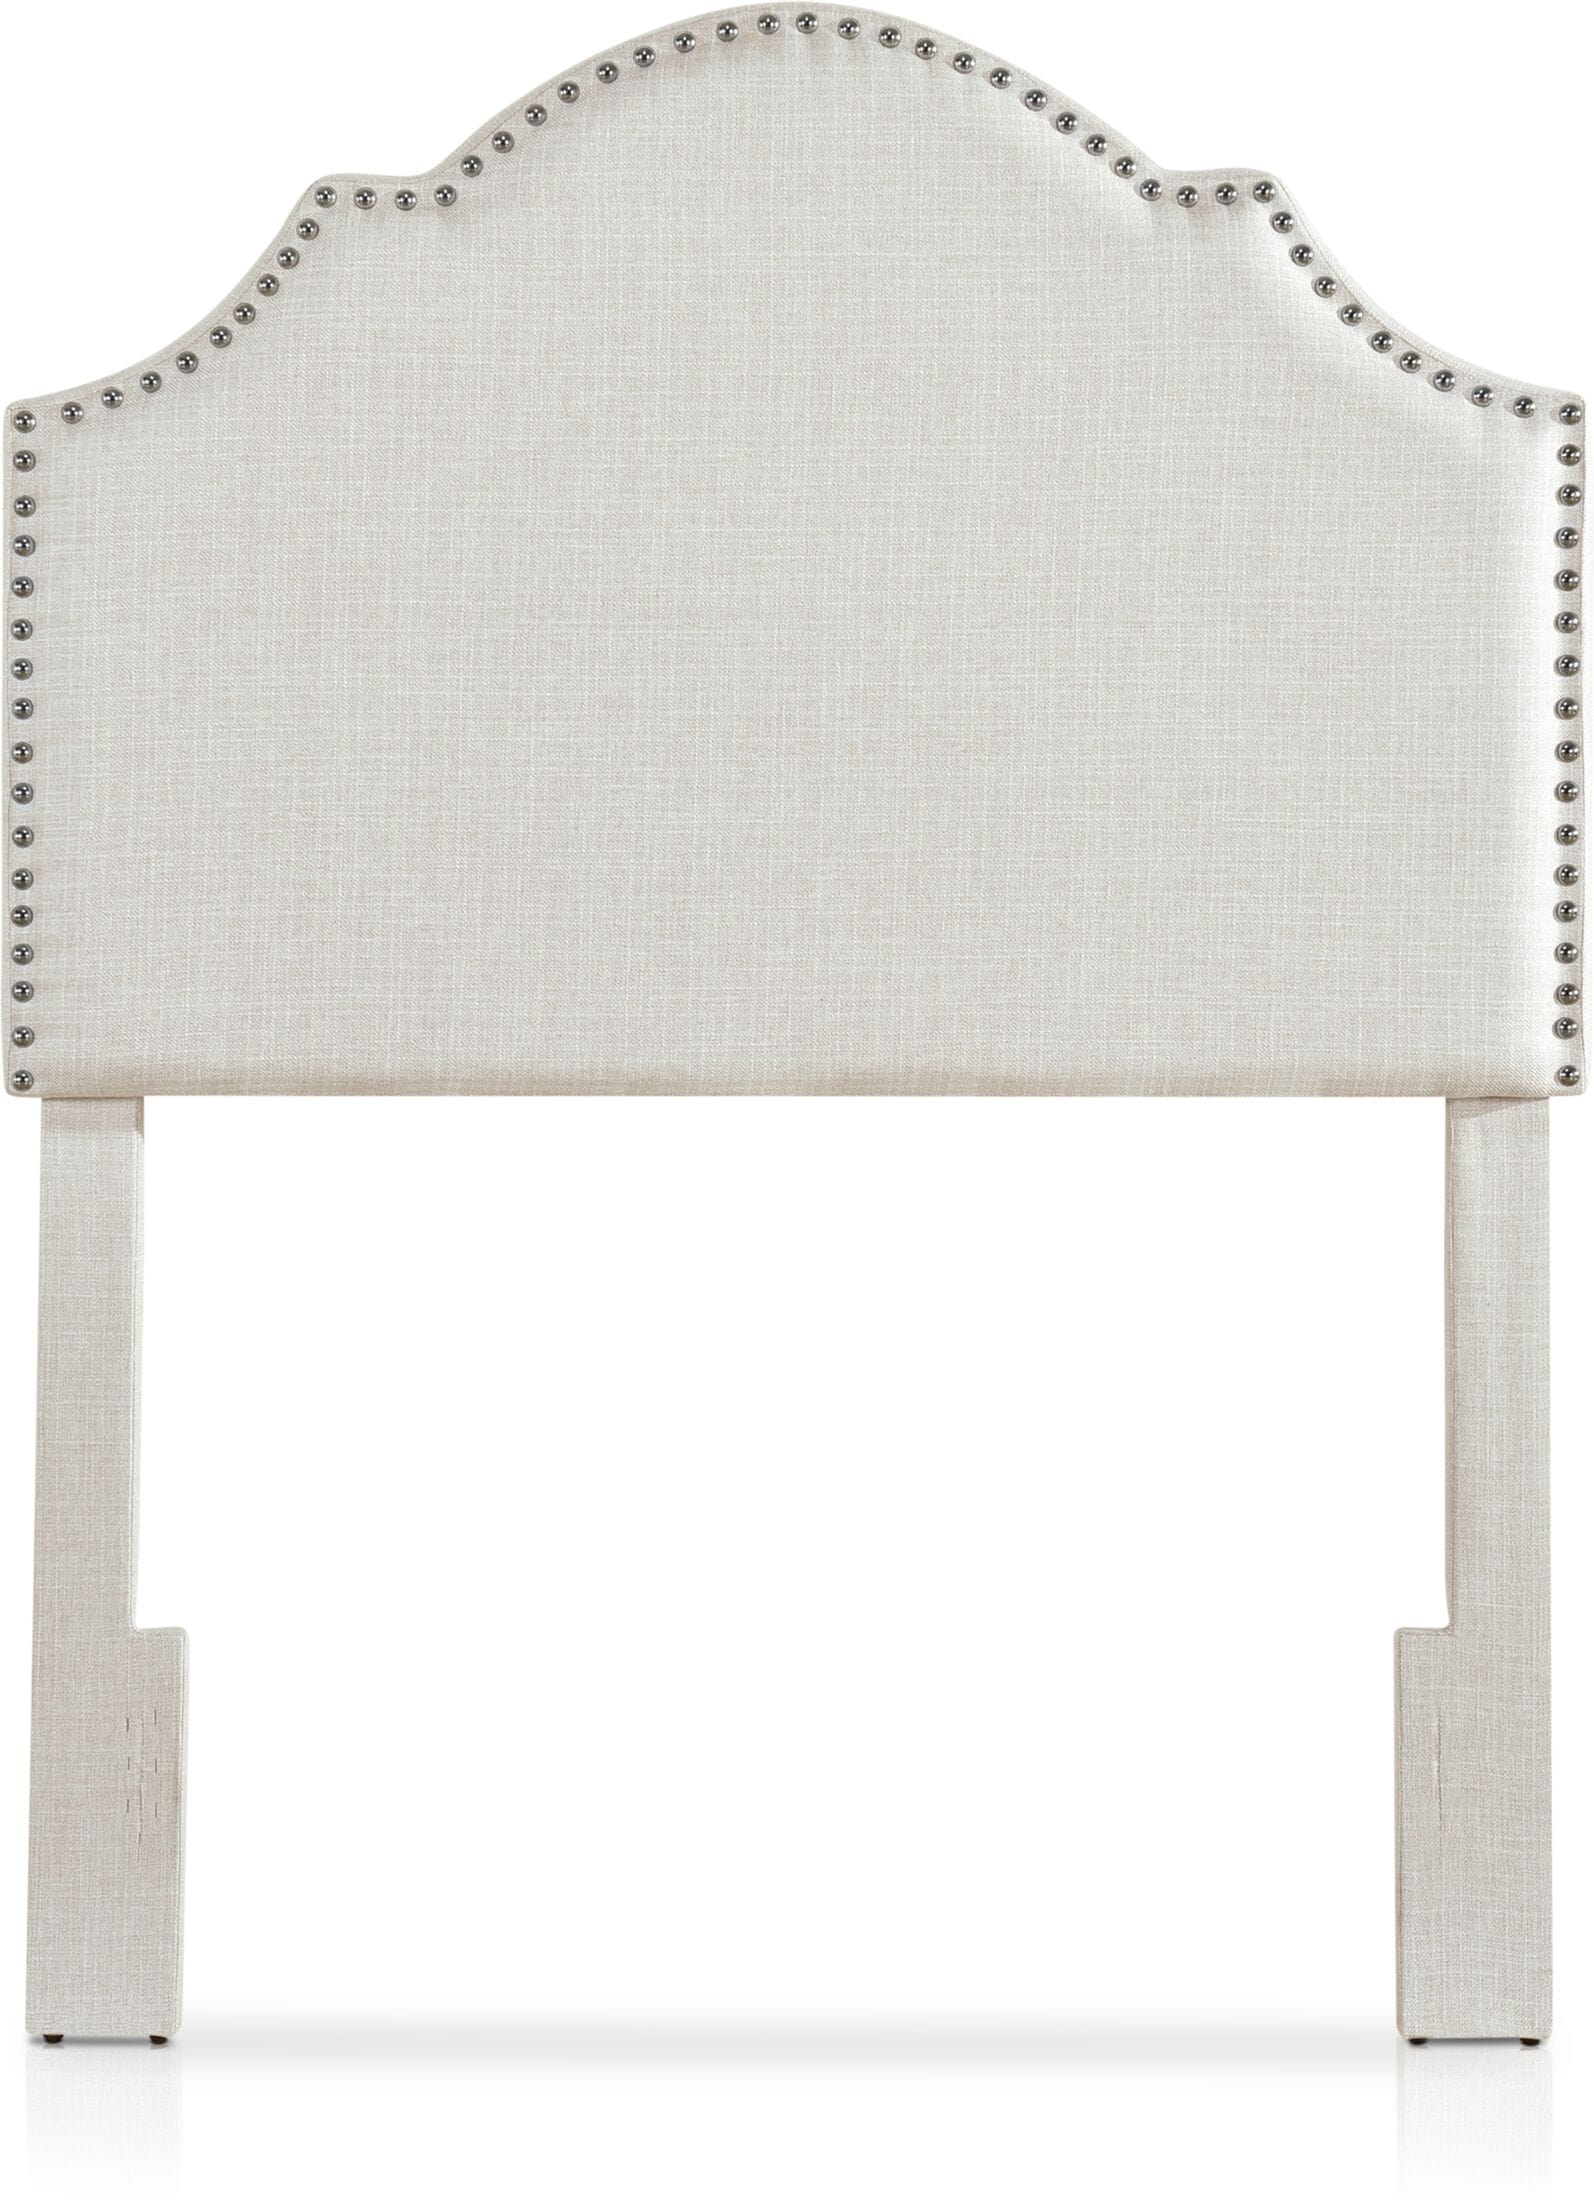 Bedroom Furniture - Luna Upholstered Headboard